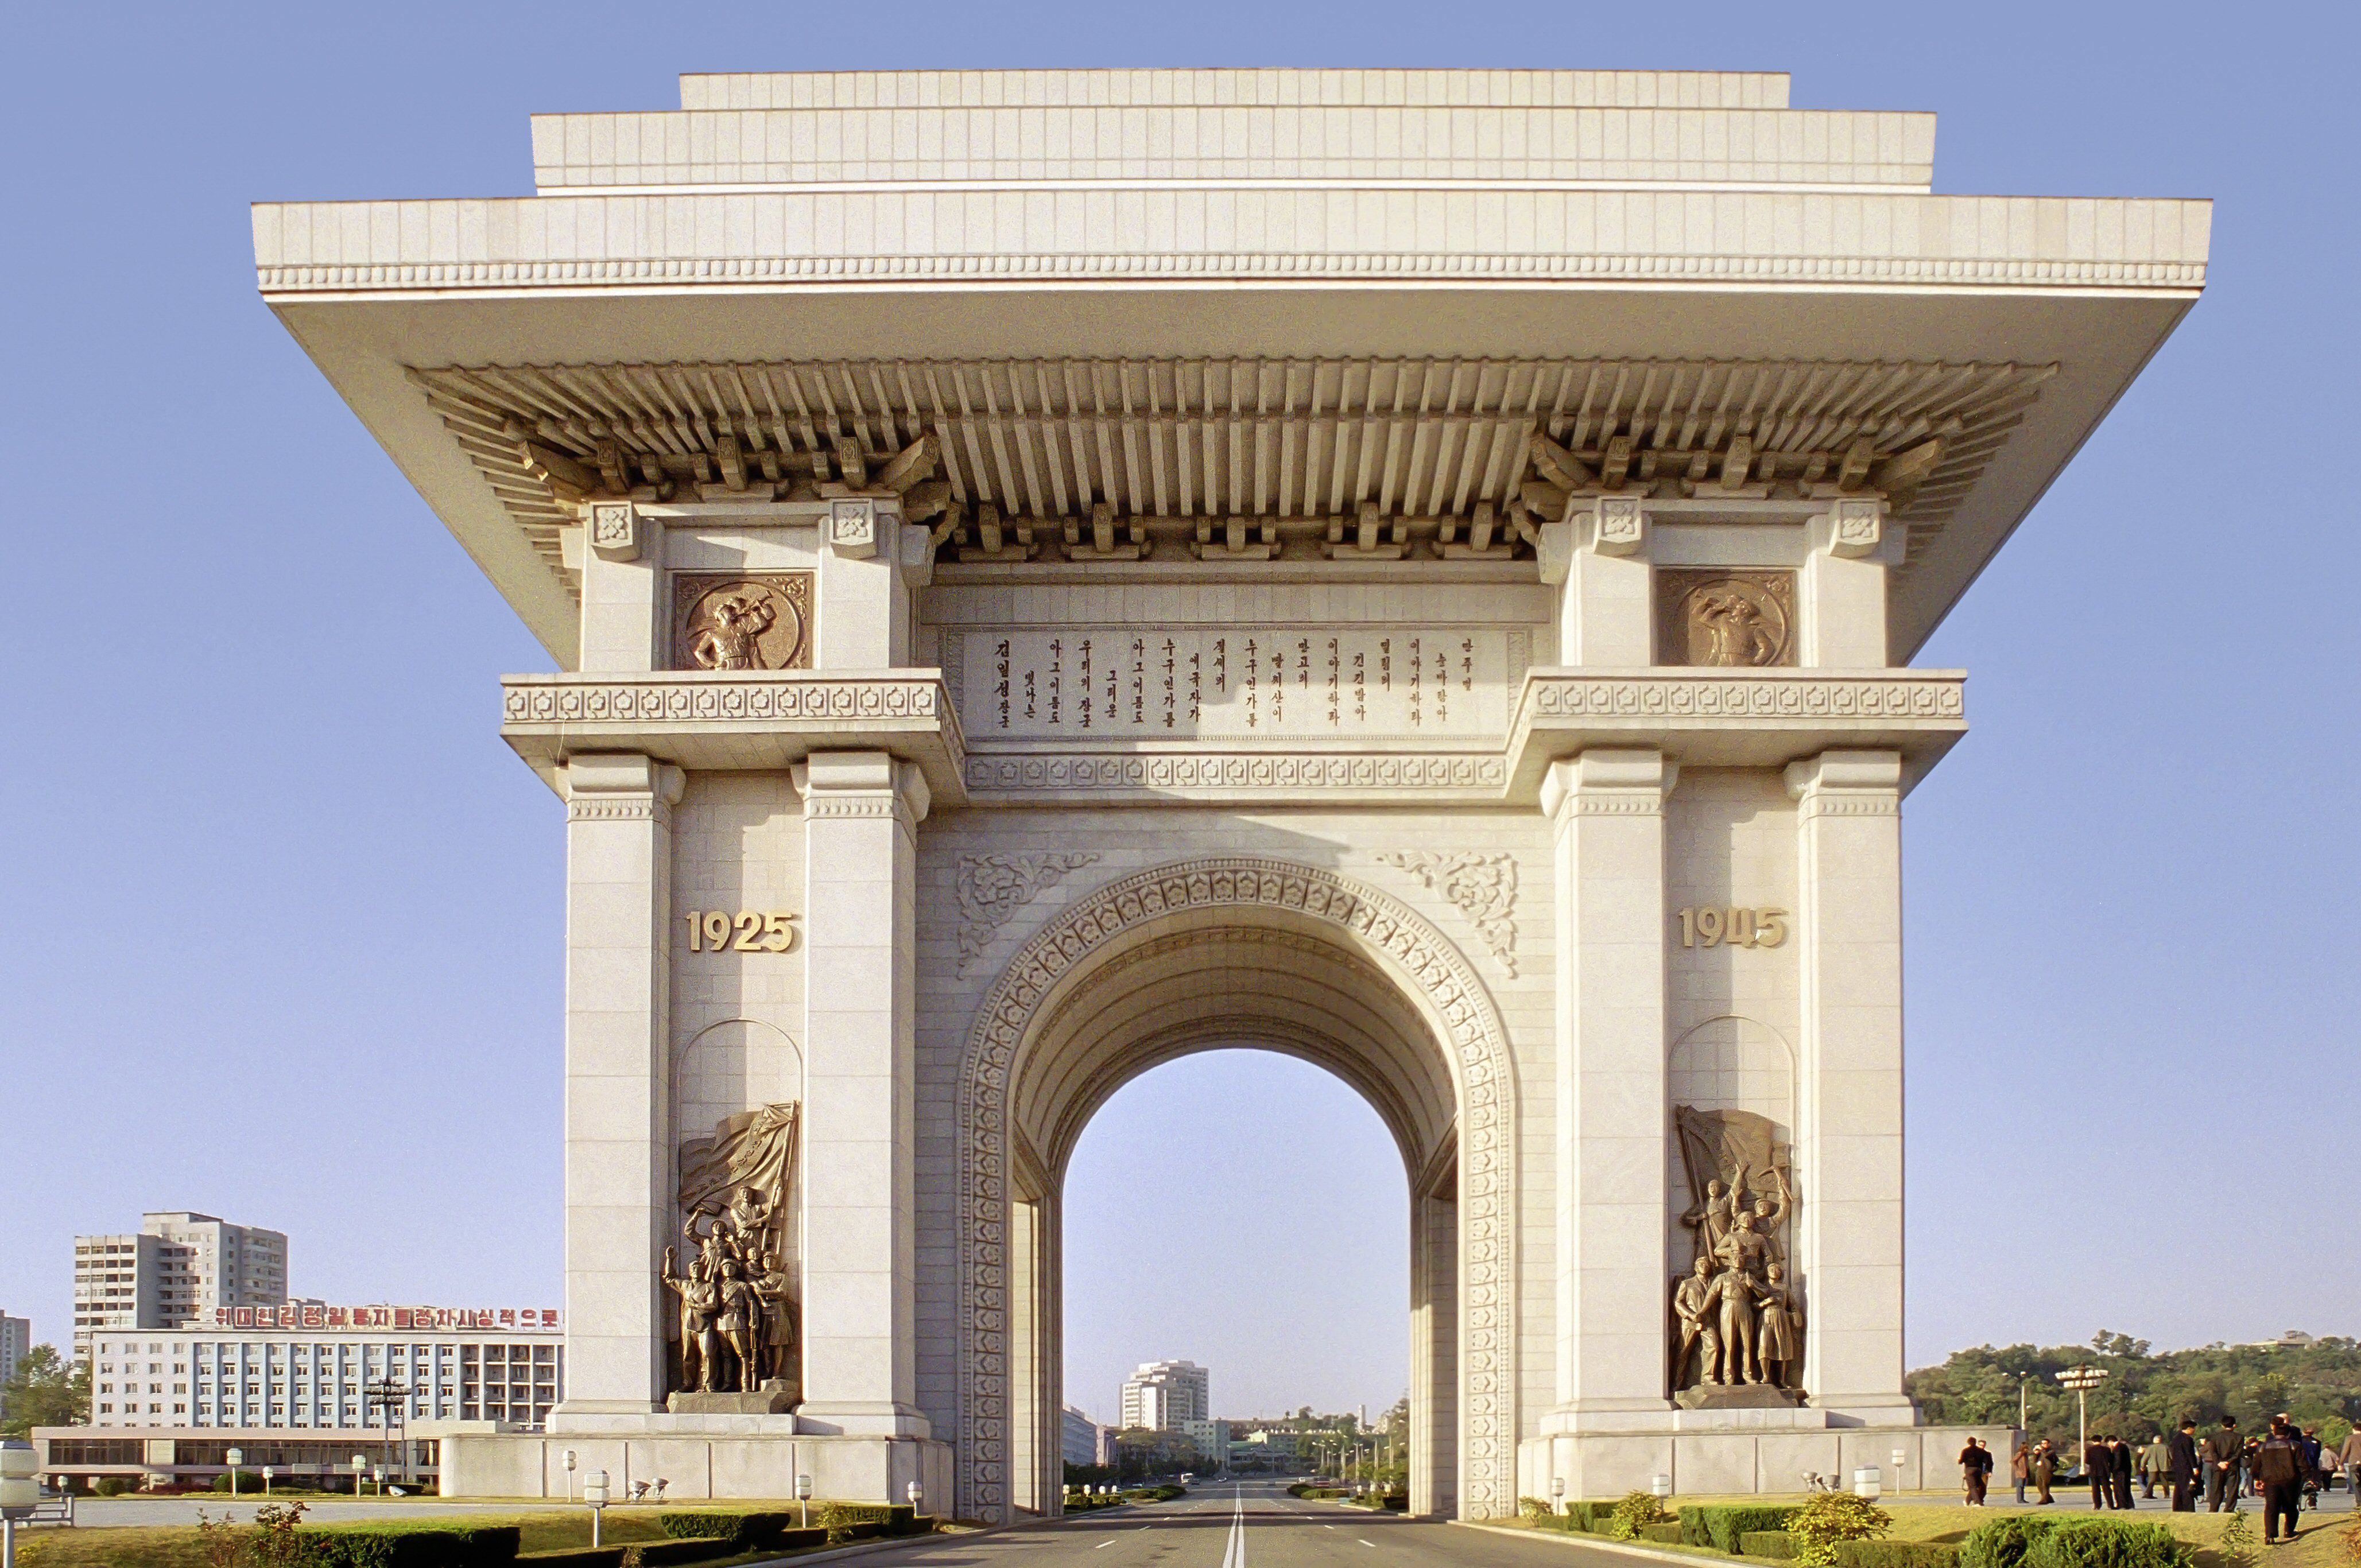 light-colored arch monument with wide overhang top